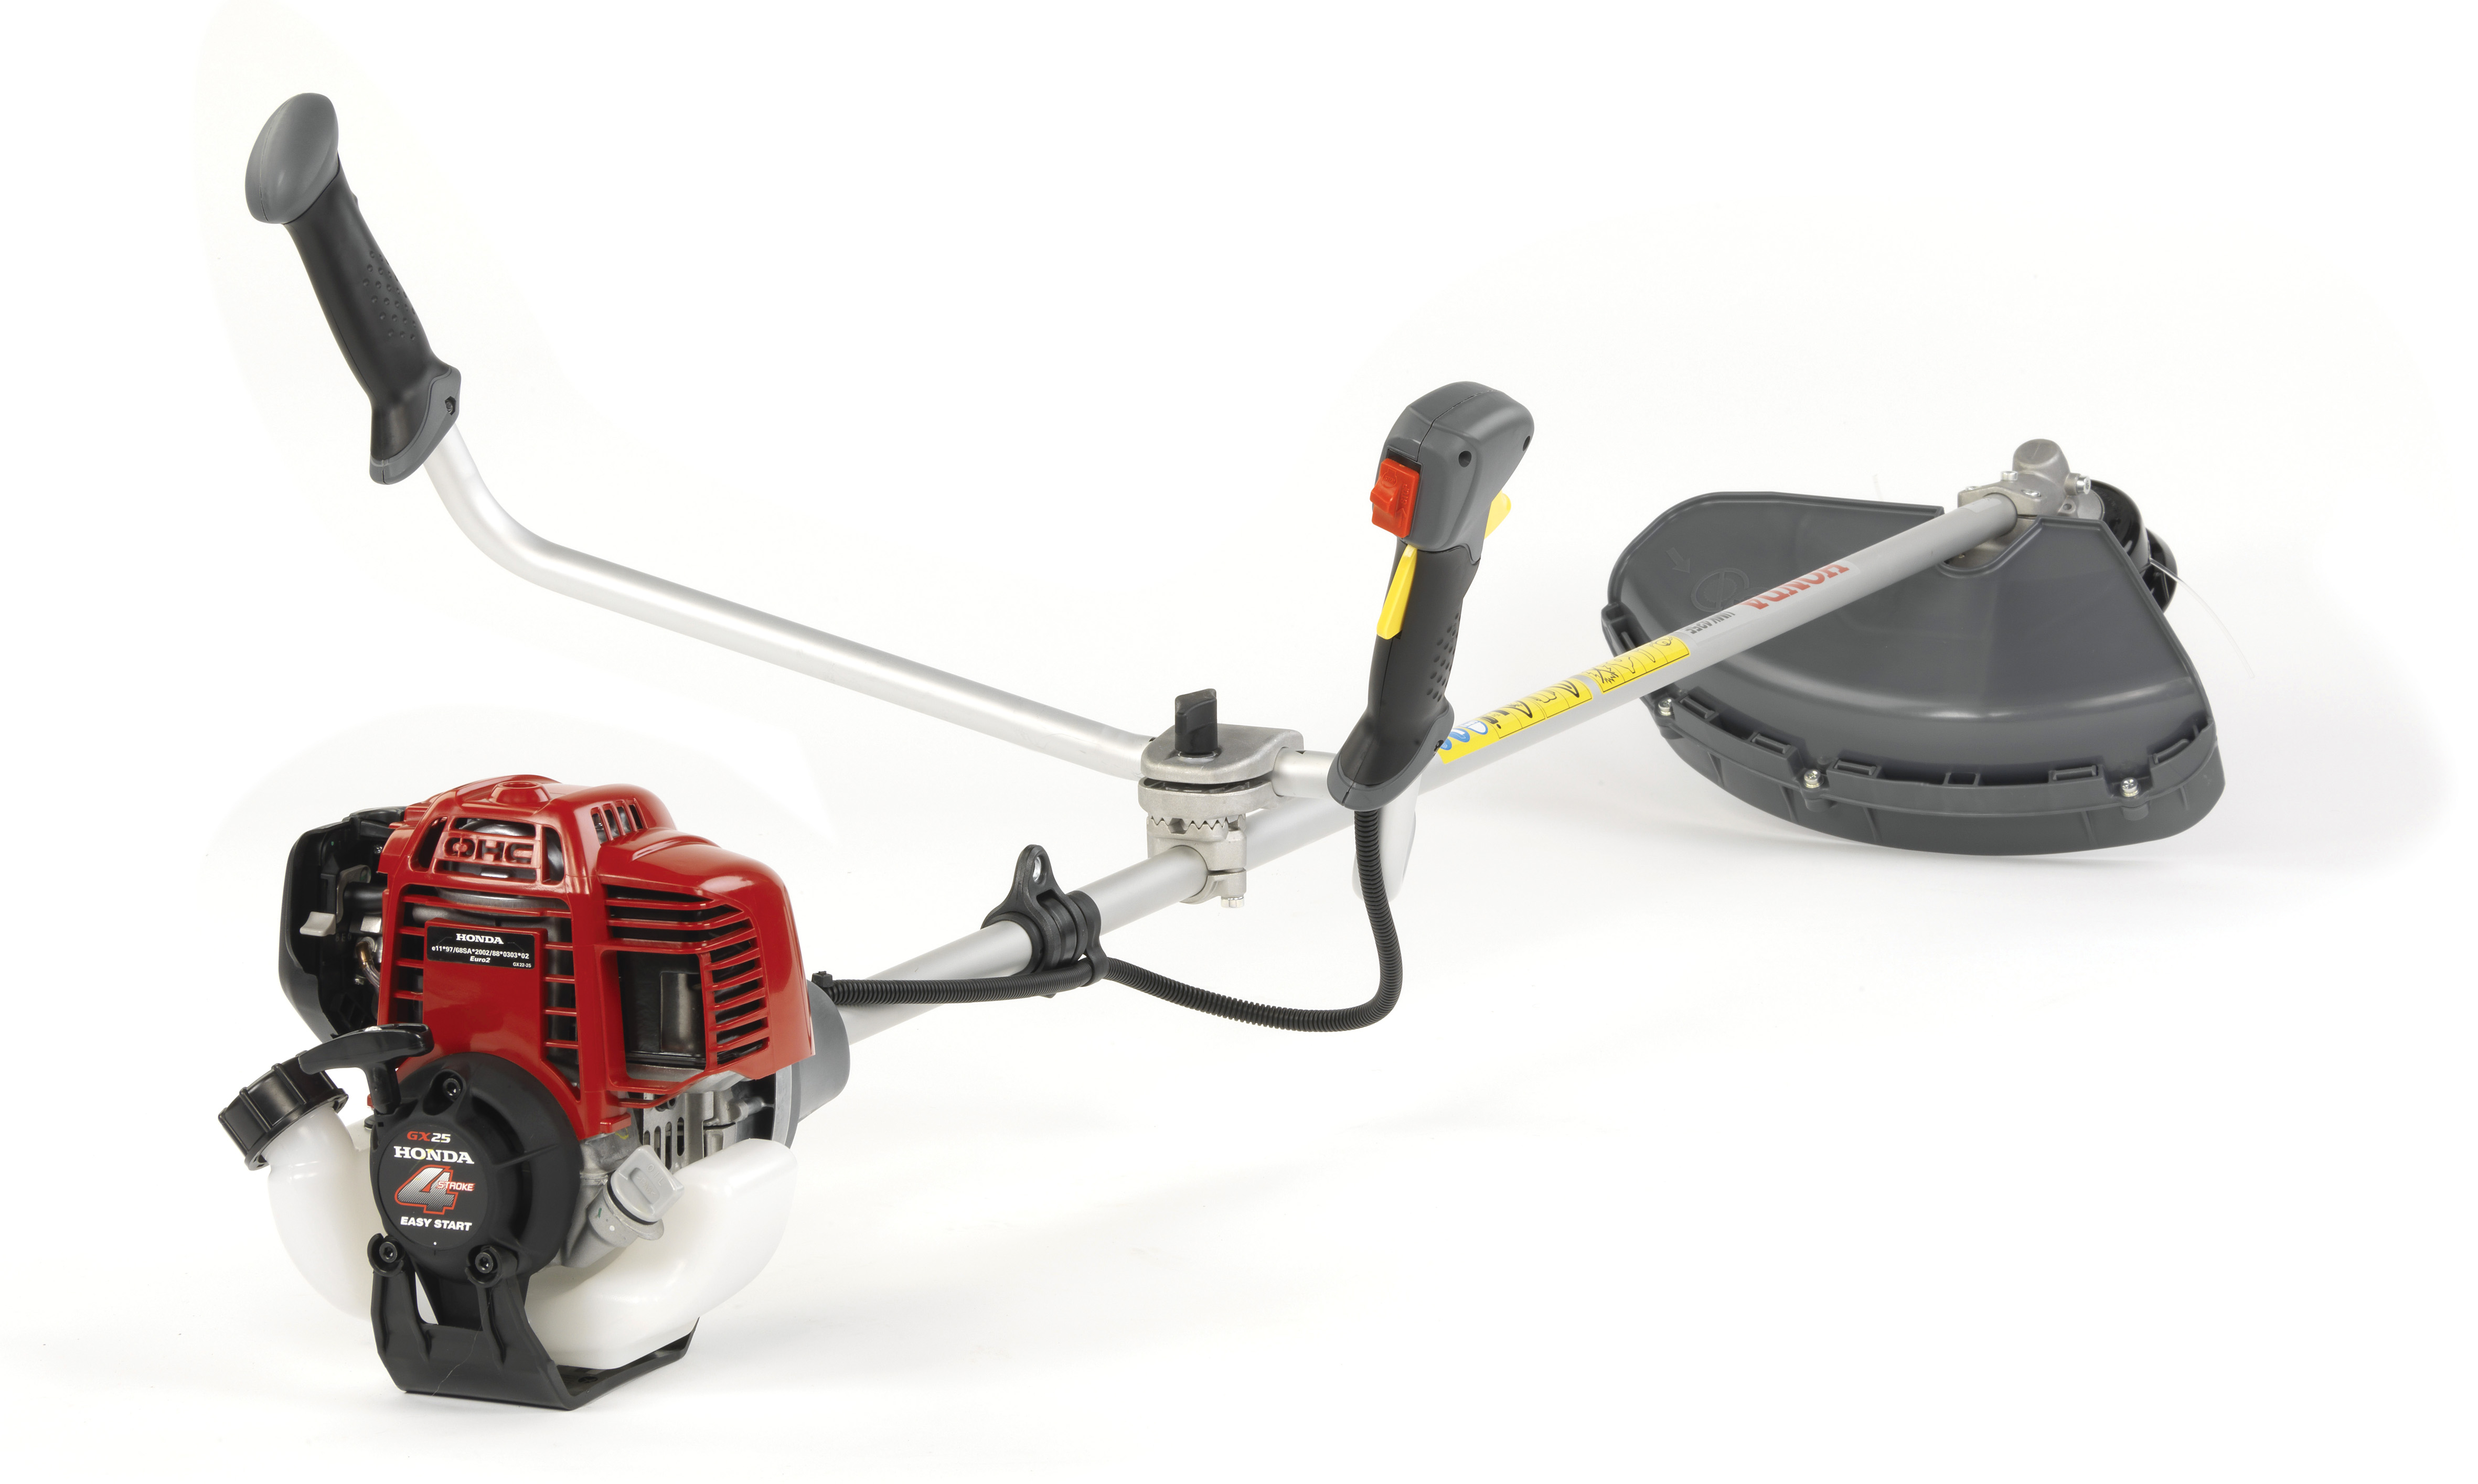 HONDA UMK 425 UE Strimmer and Brushcutter